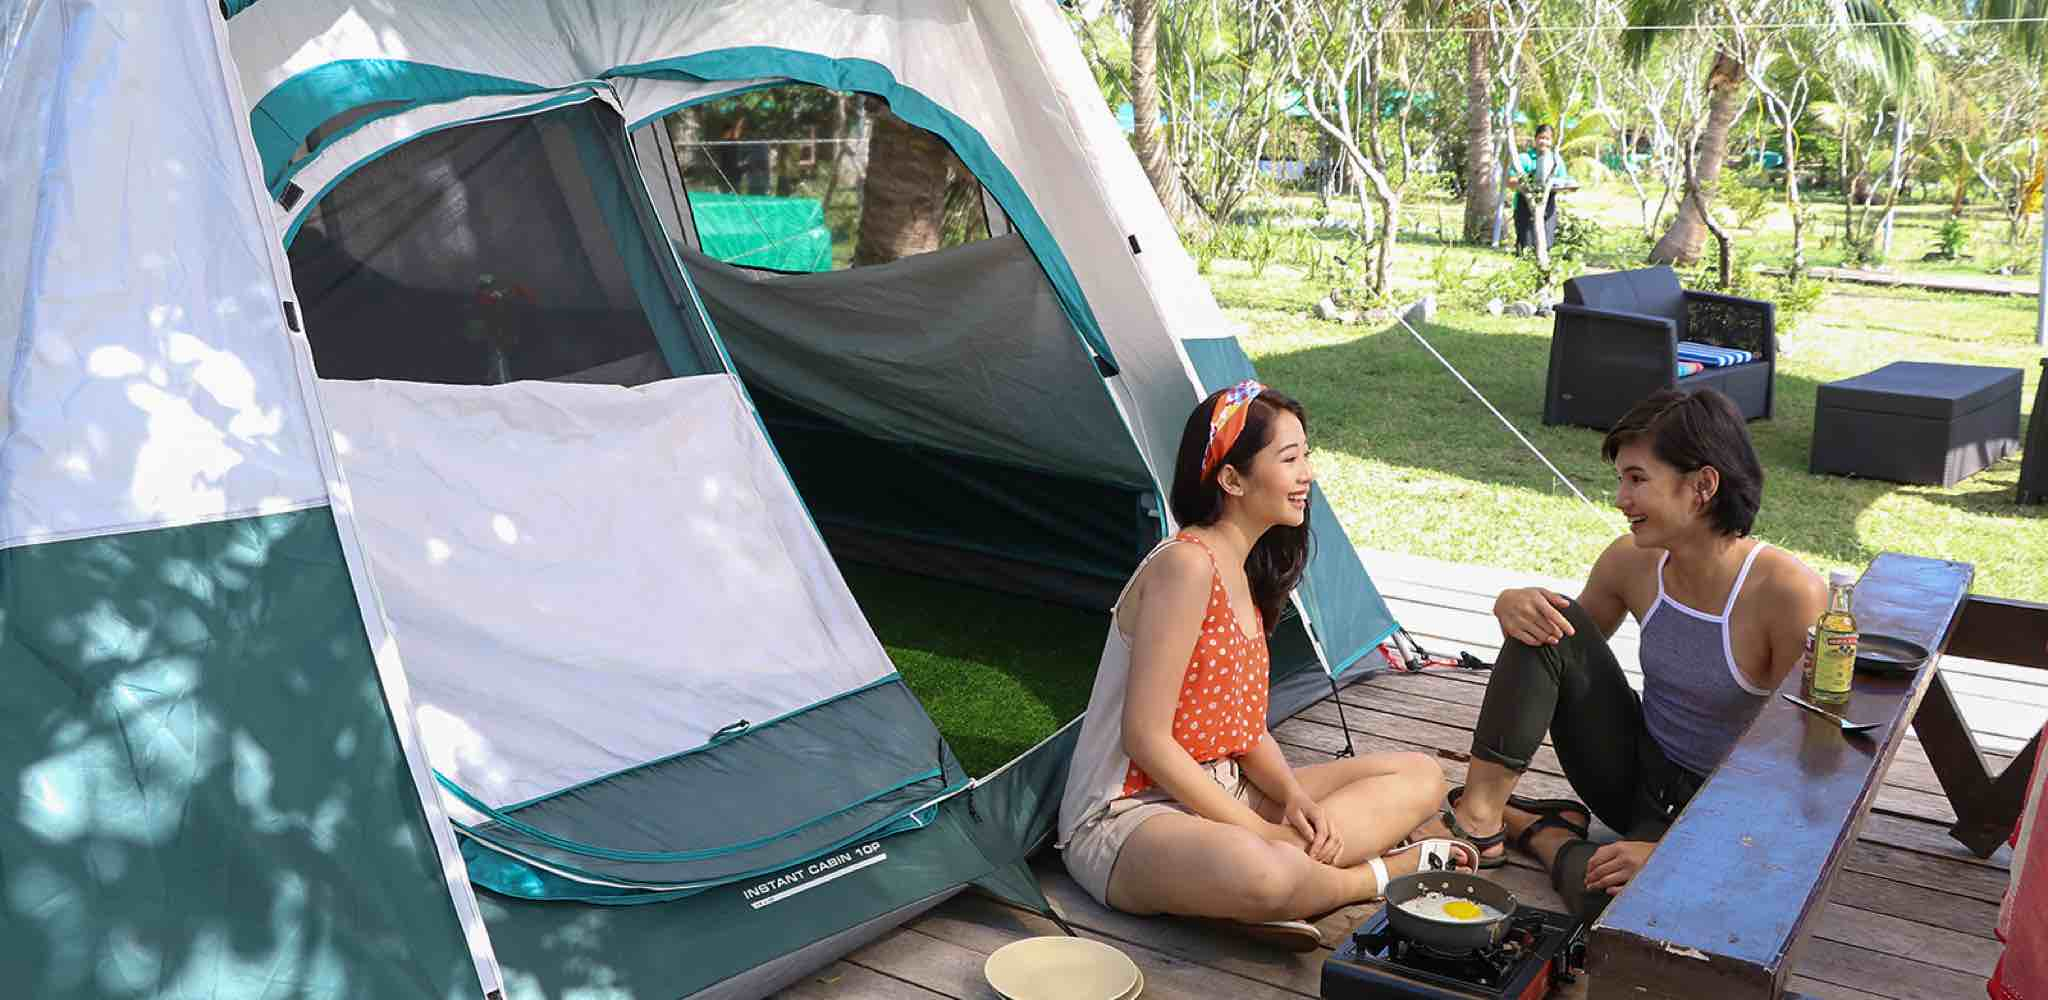 Baler - Glamping Under the Stars